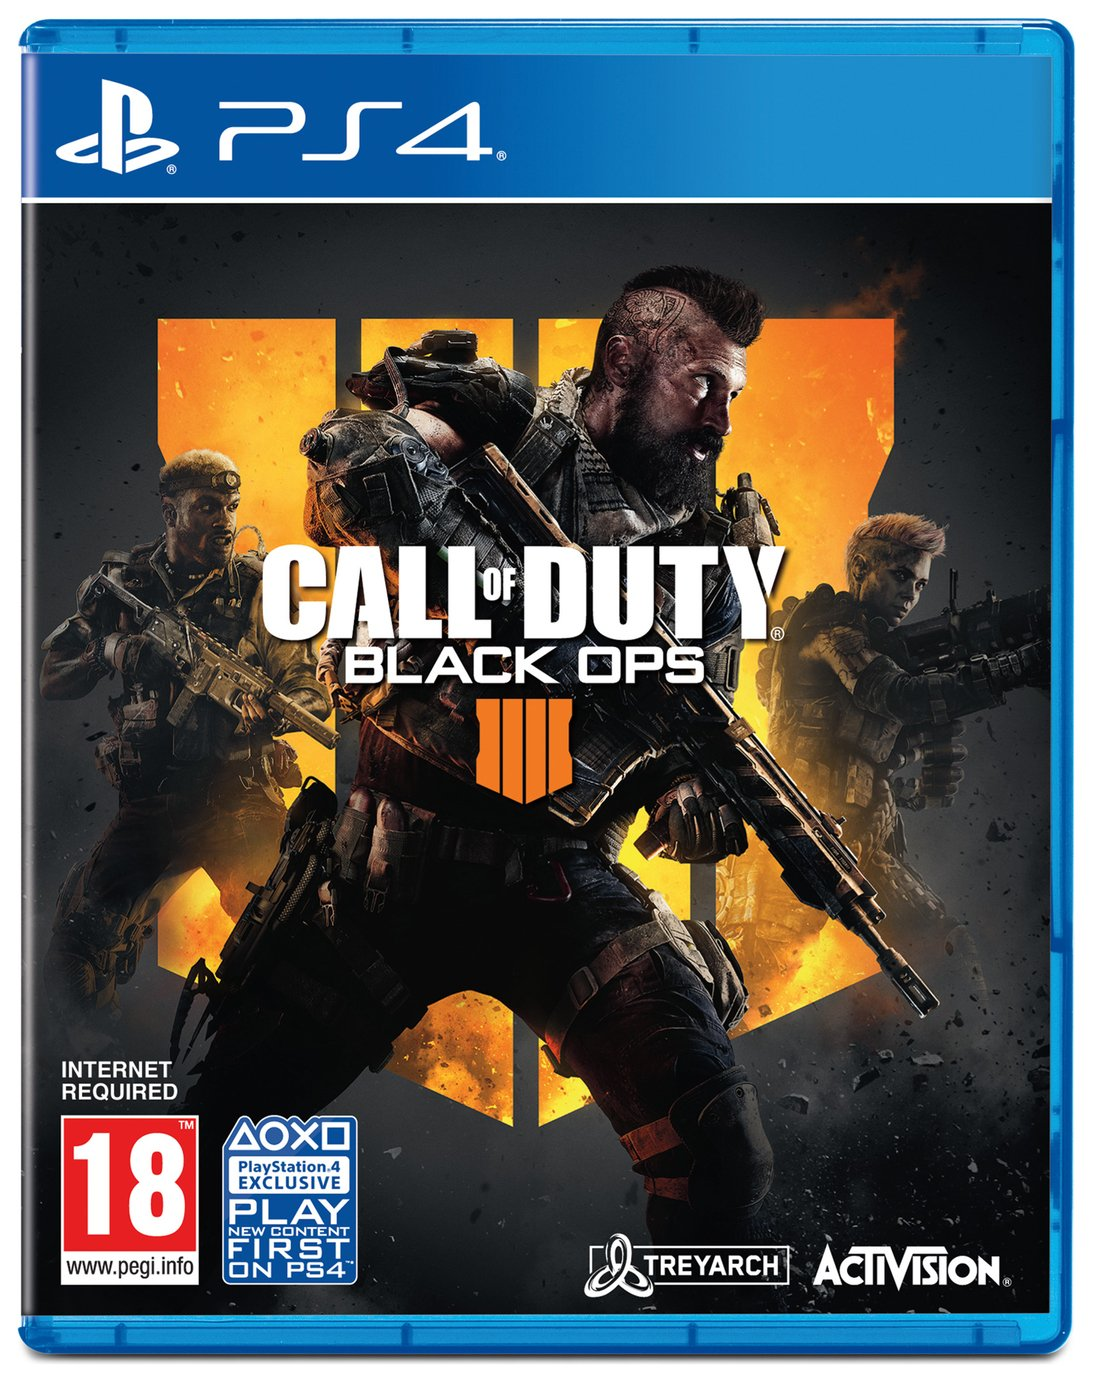 Image of Call of Duty: Black Ops 4 PS4 Pre-Order Game